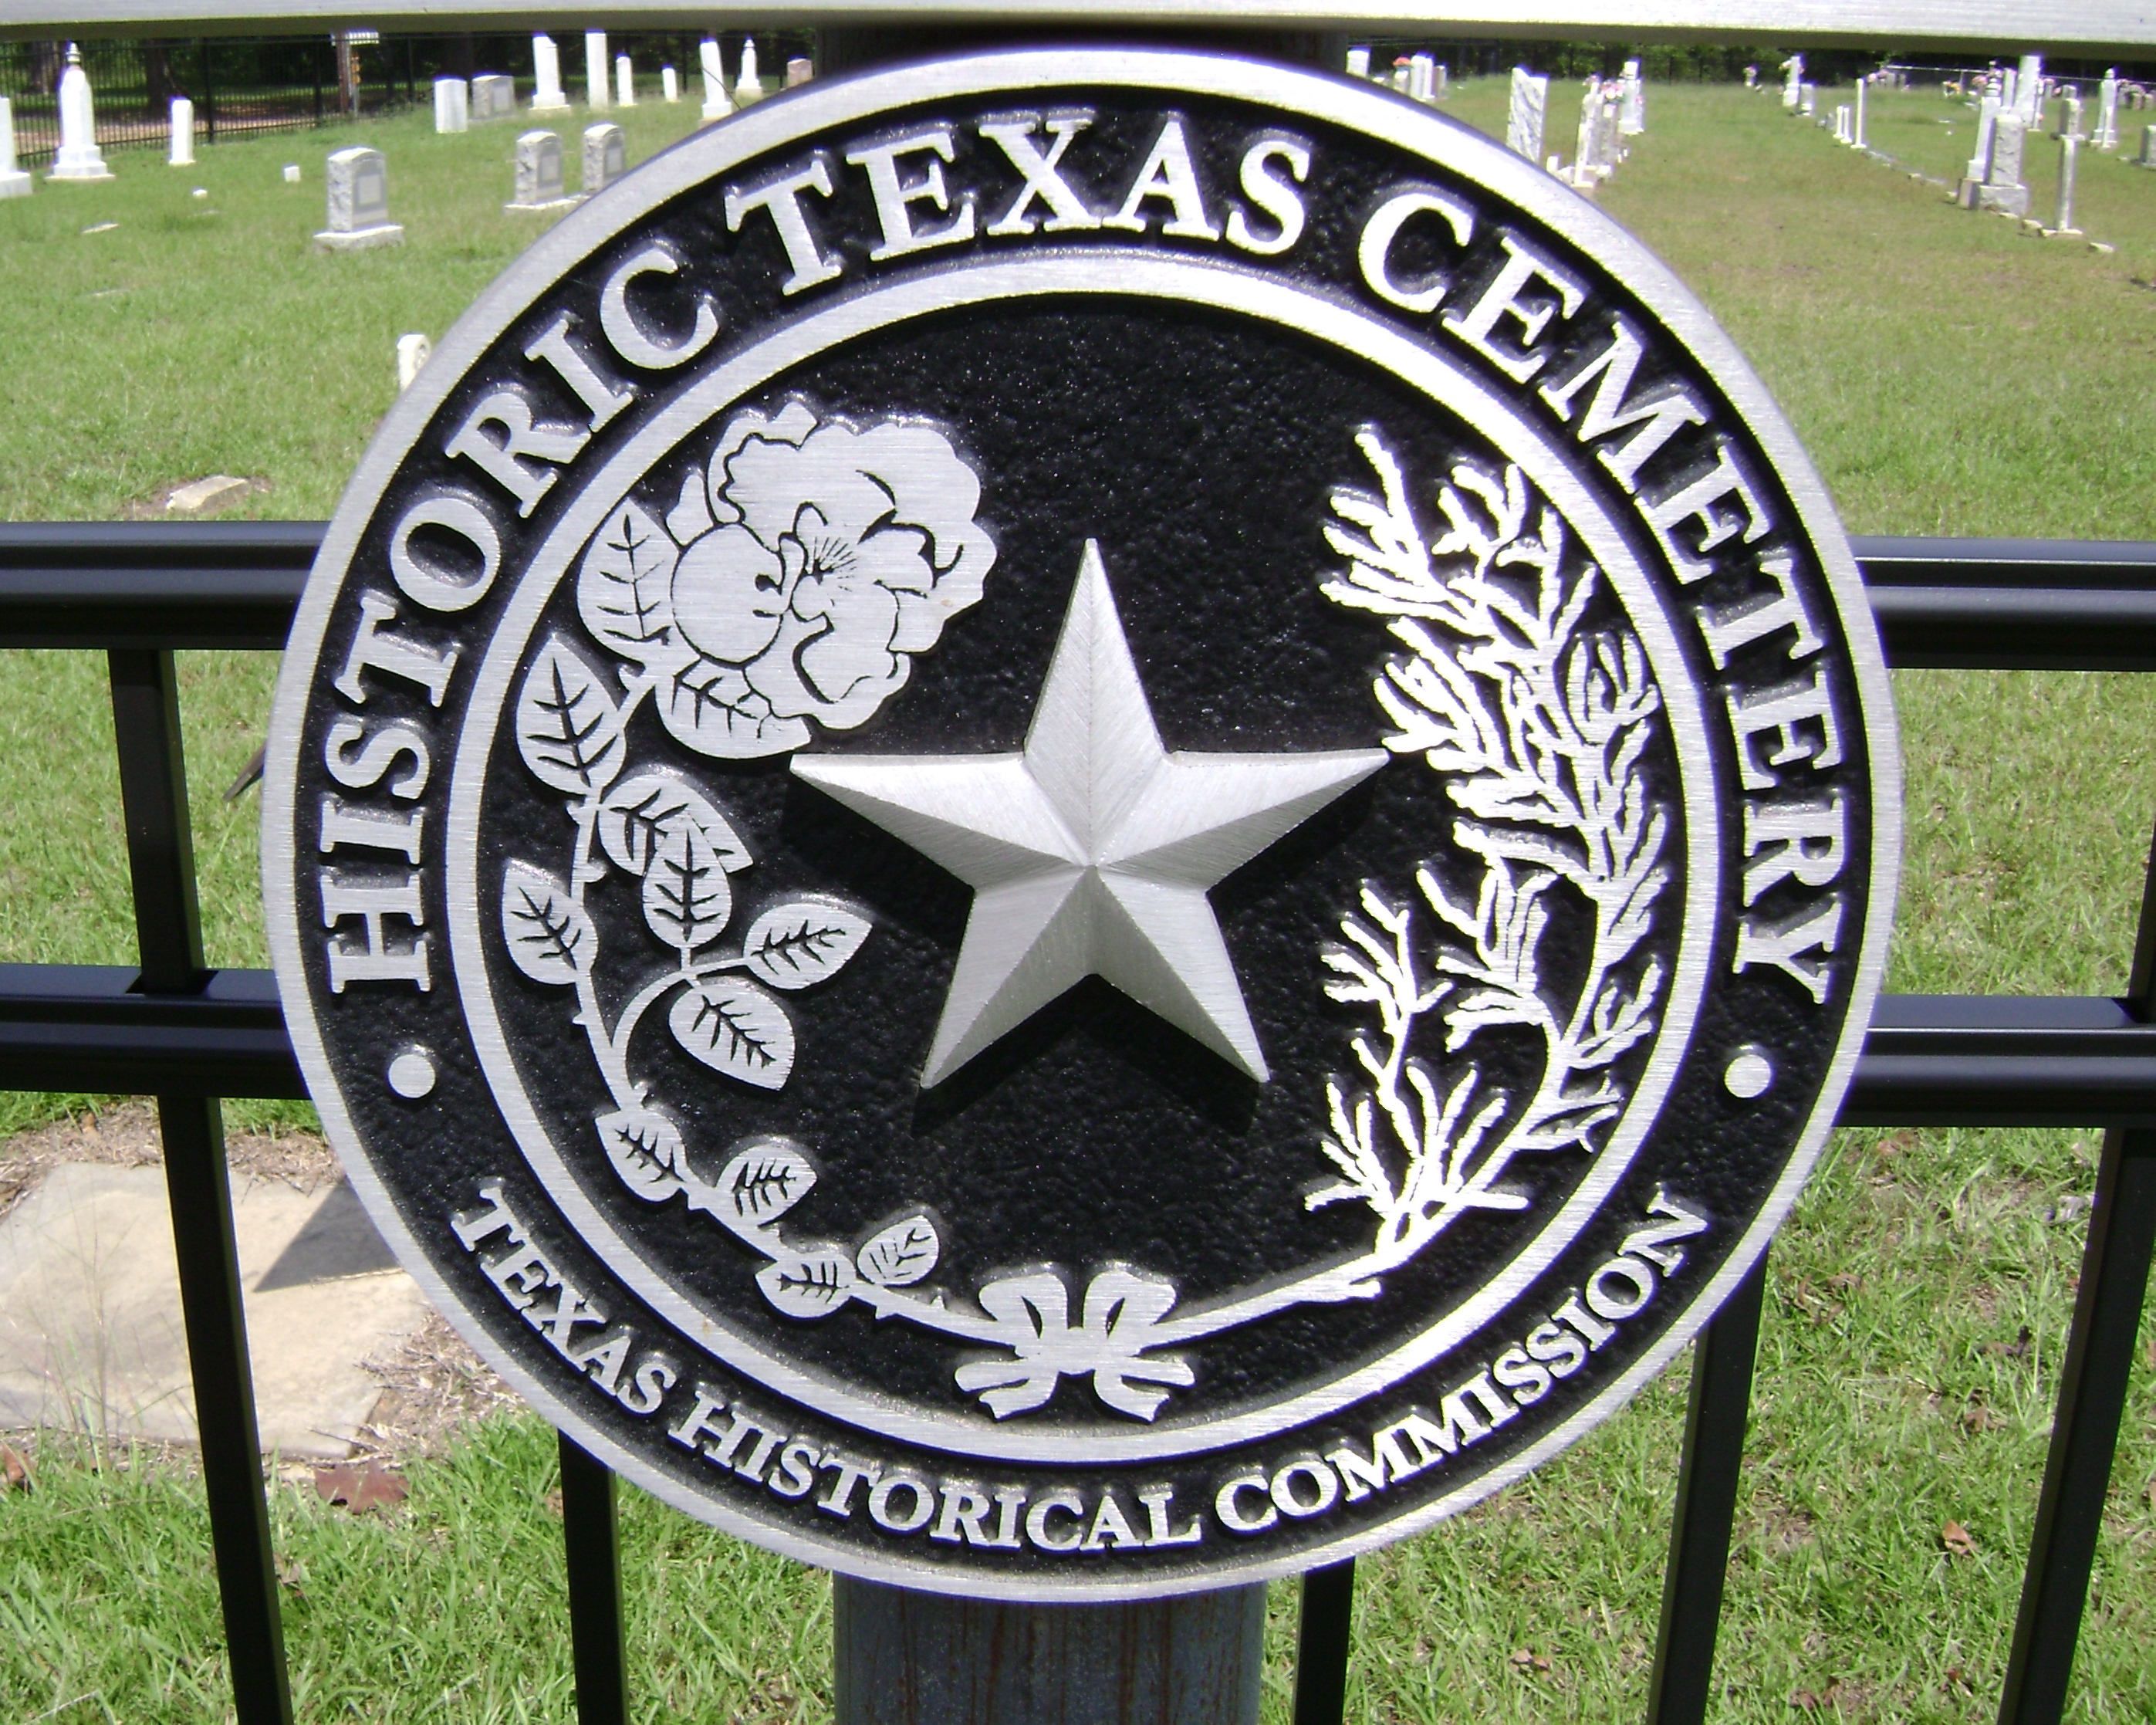 A cemetery is a historic site of importance with eternal implications.